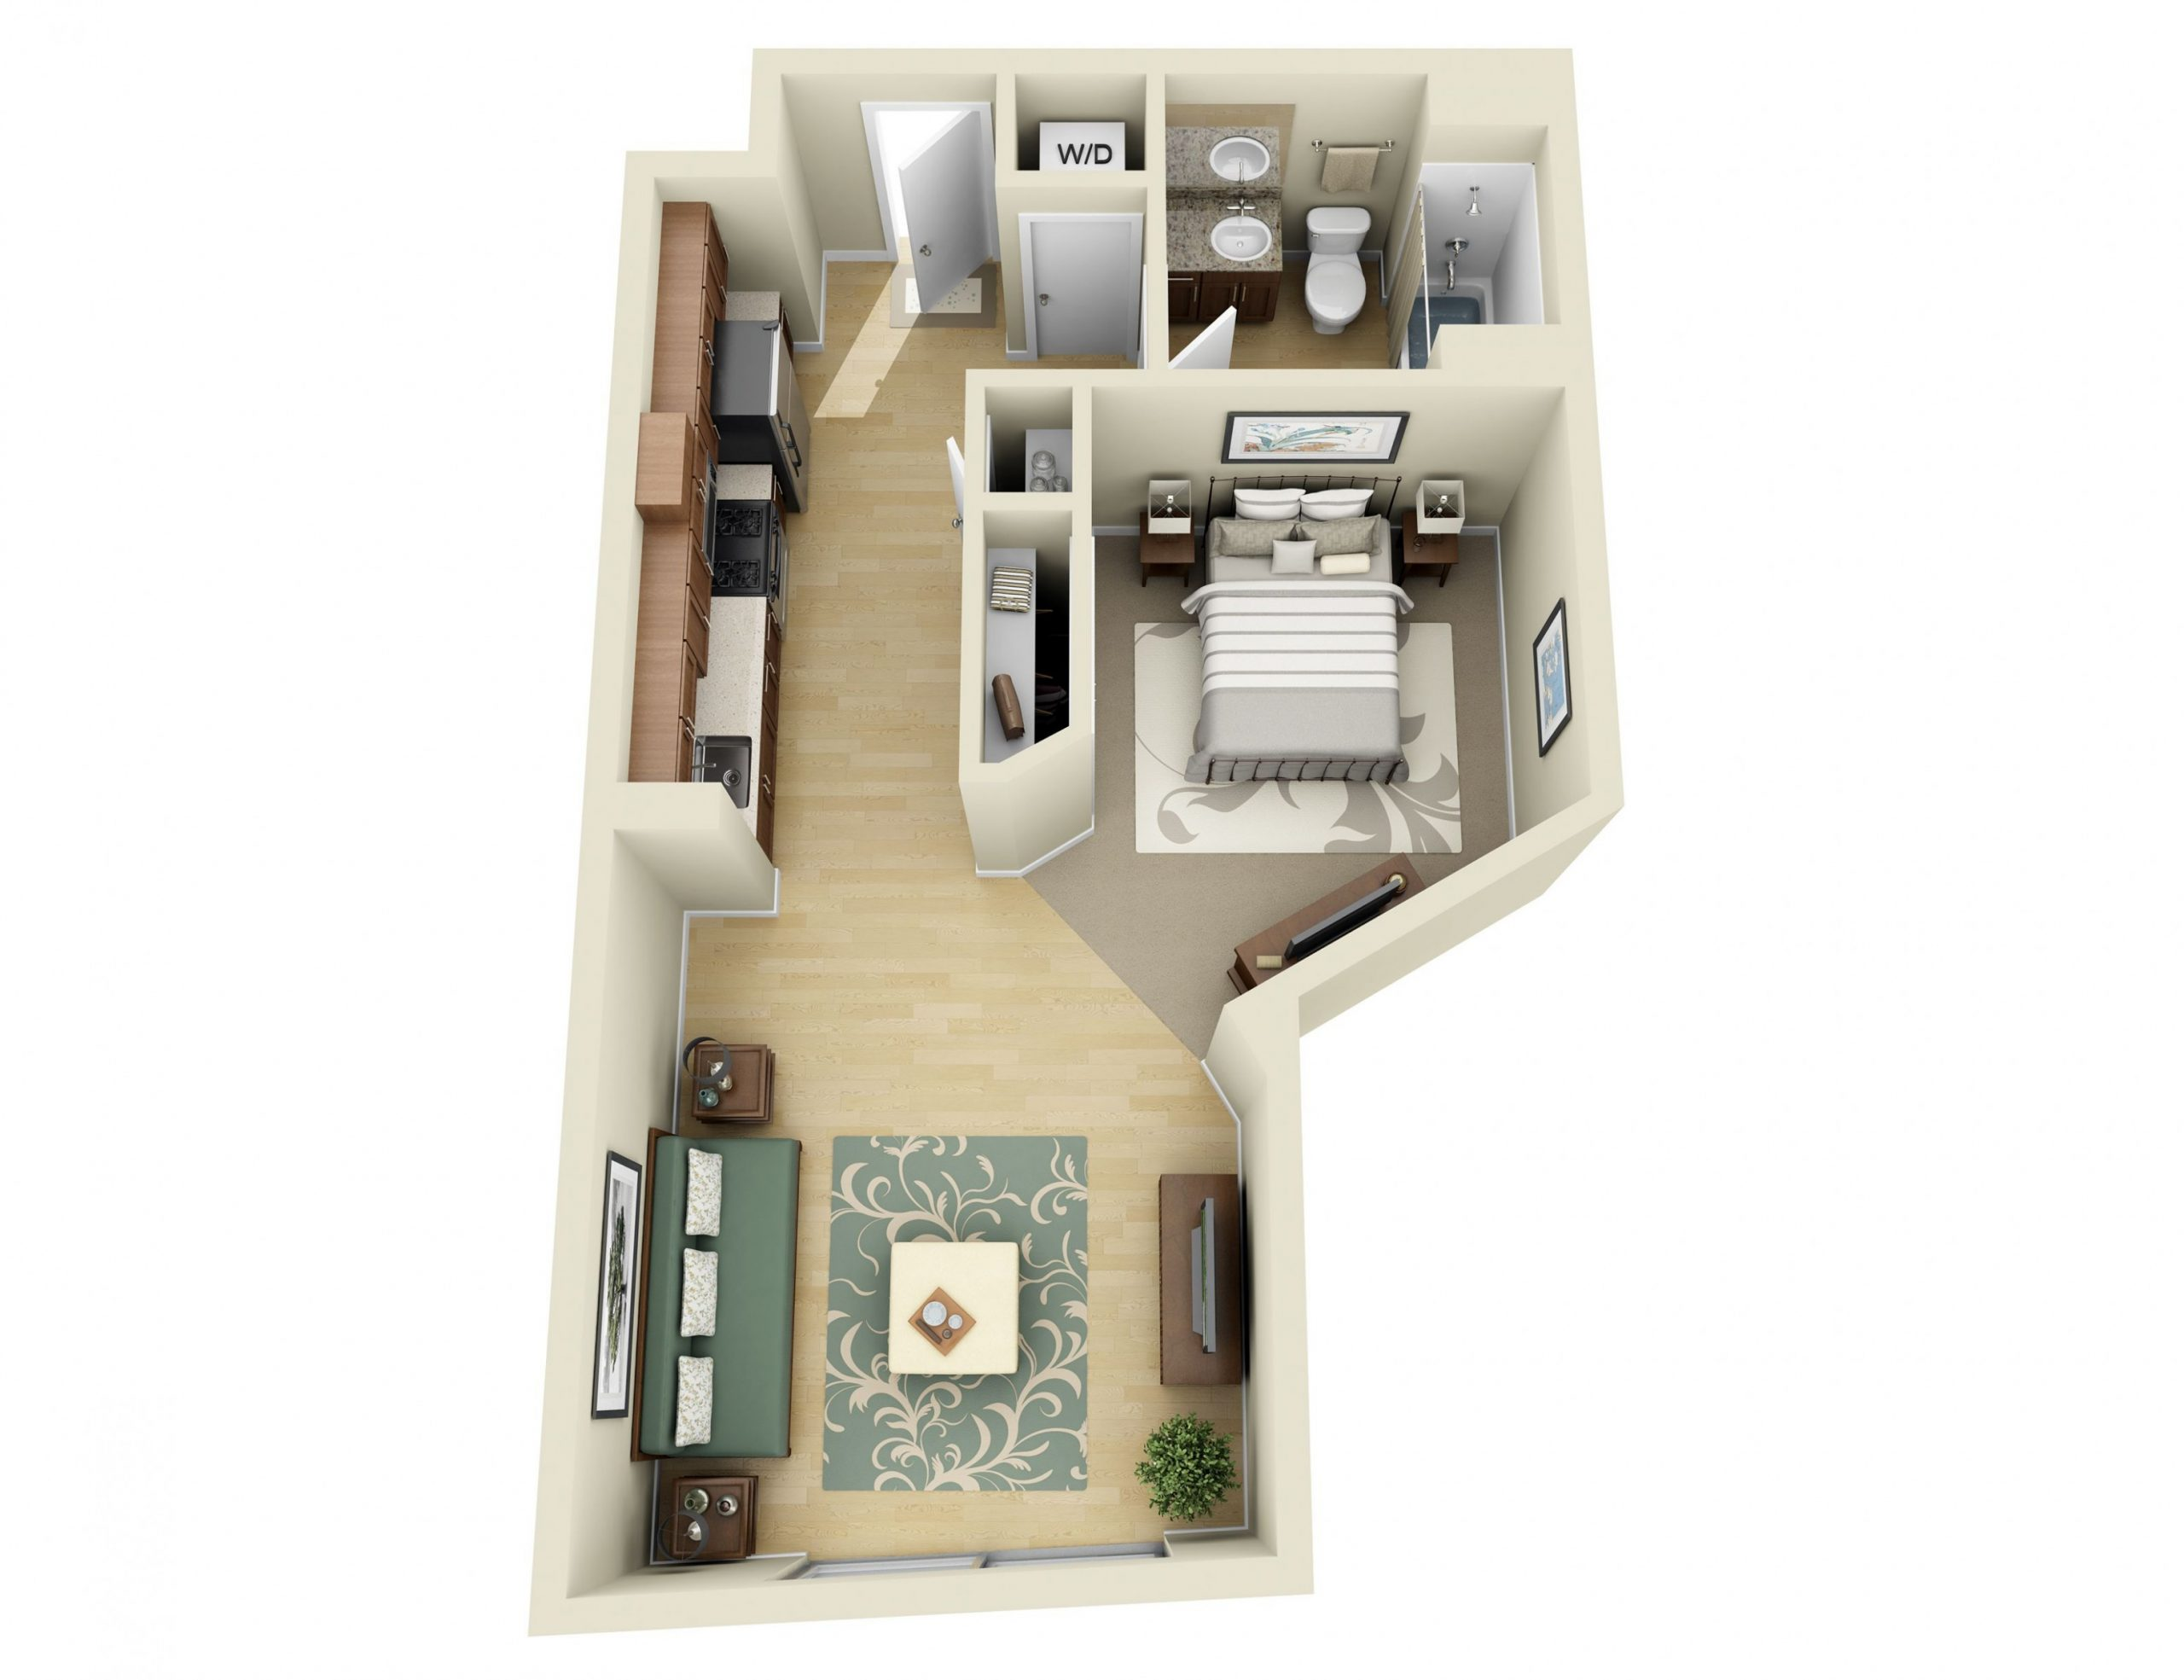 Studio, 100, 100 and 100 Bedroom Apartments in Los Angeles  100 bedroom  - Apartment Design Guide Part 3